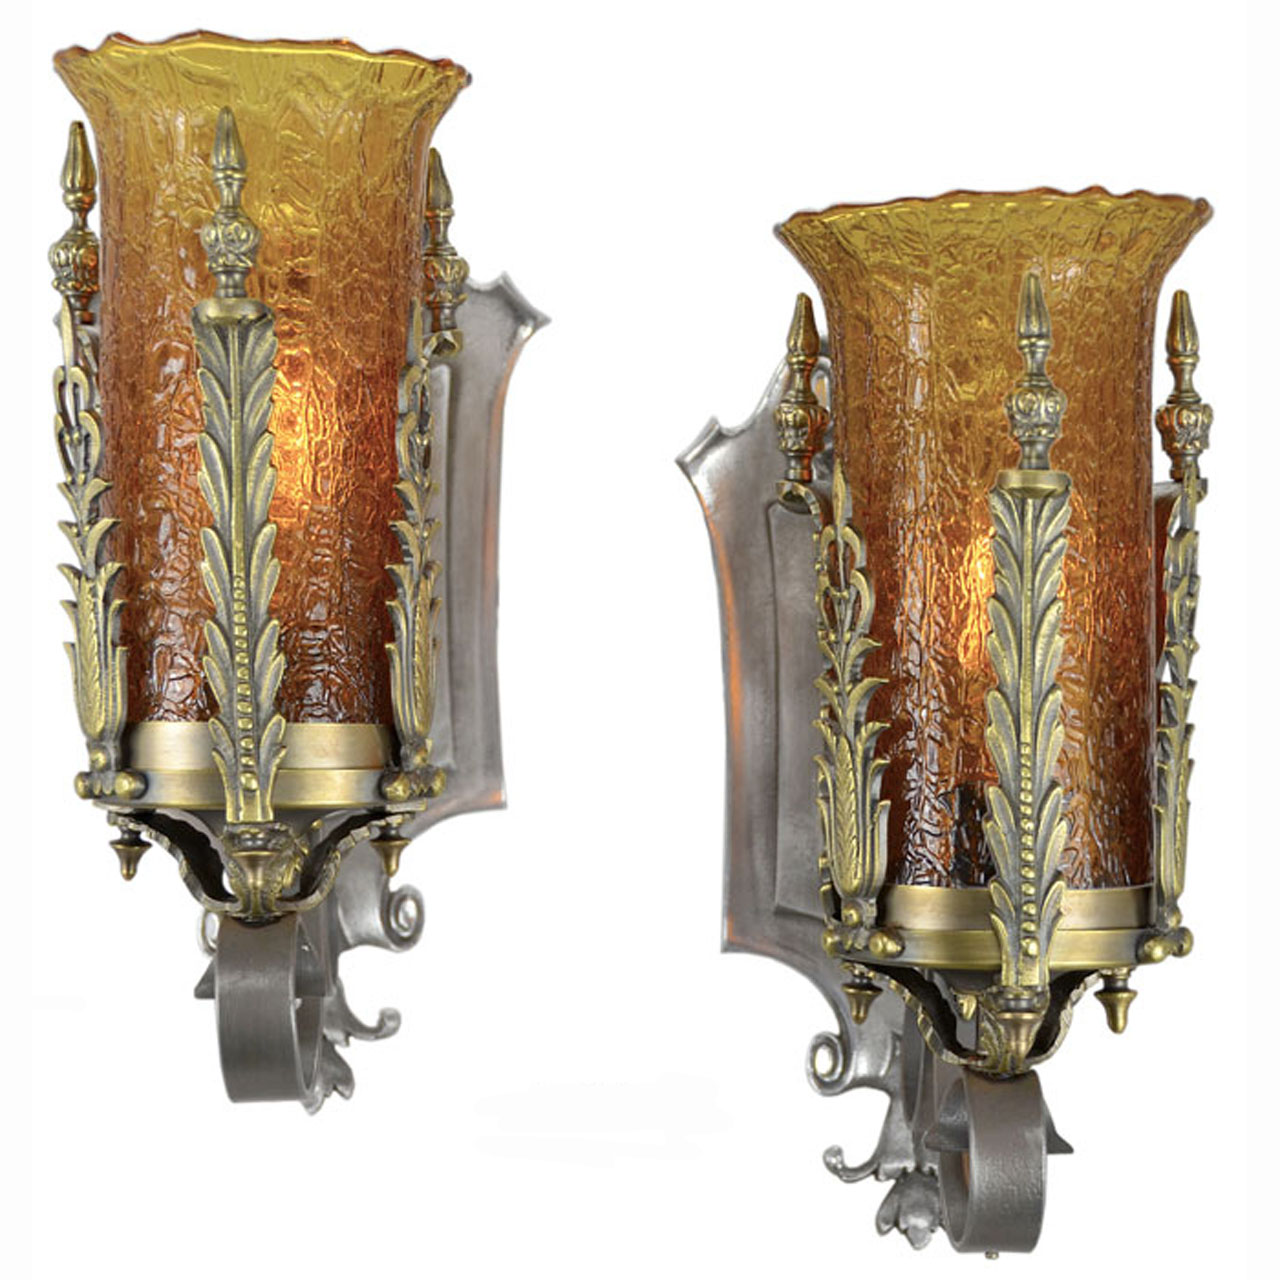 Vintage Glass Wall Sconces : Pair of Antique 1920s - 1930s Art Deco Wall Sconces with Crackle Glass Shades (ANT-367) For Sale ...